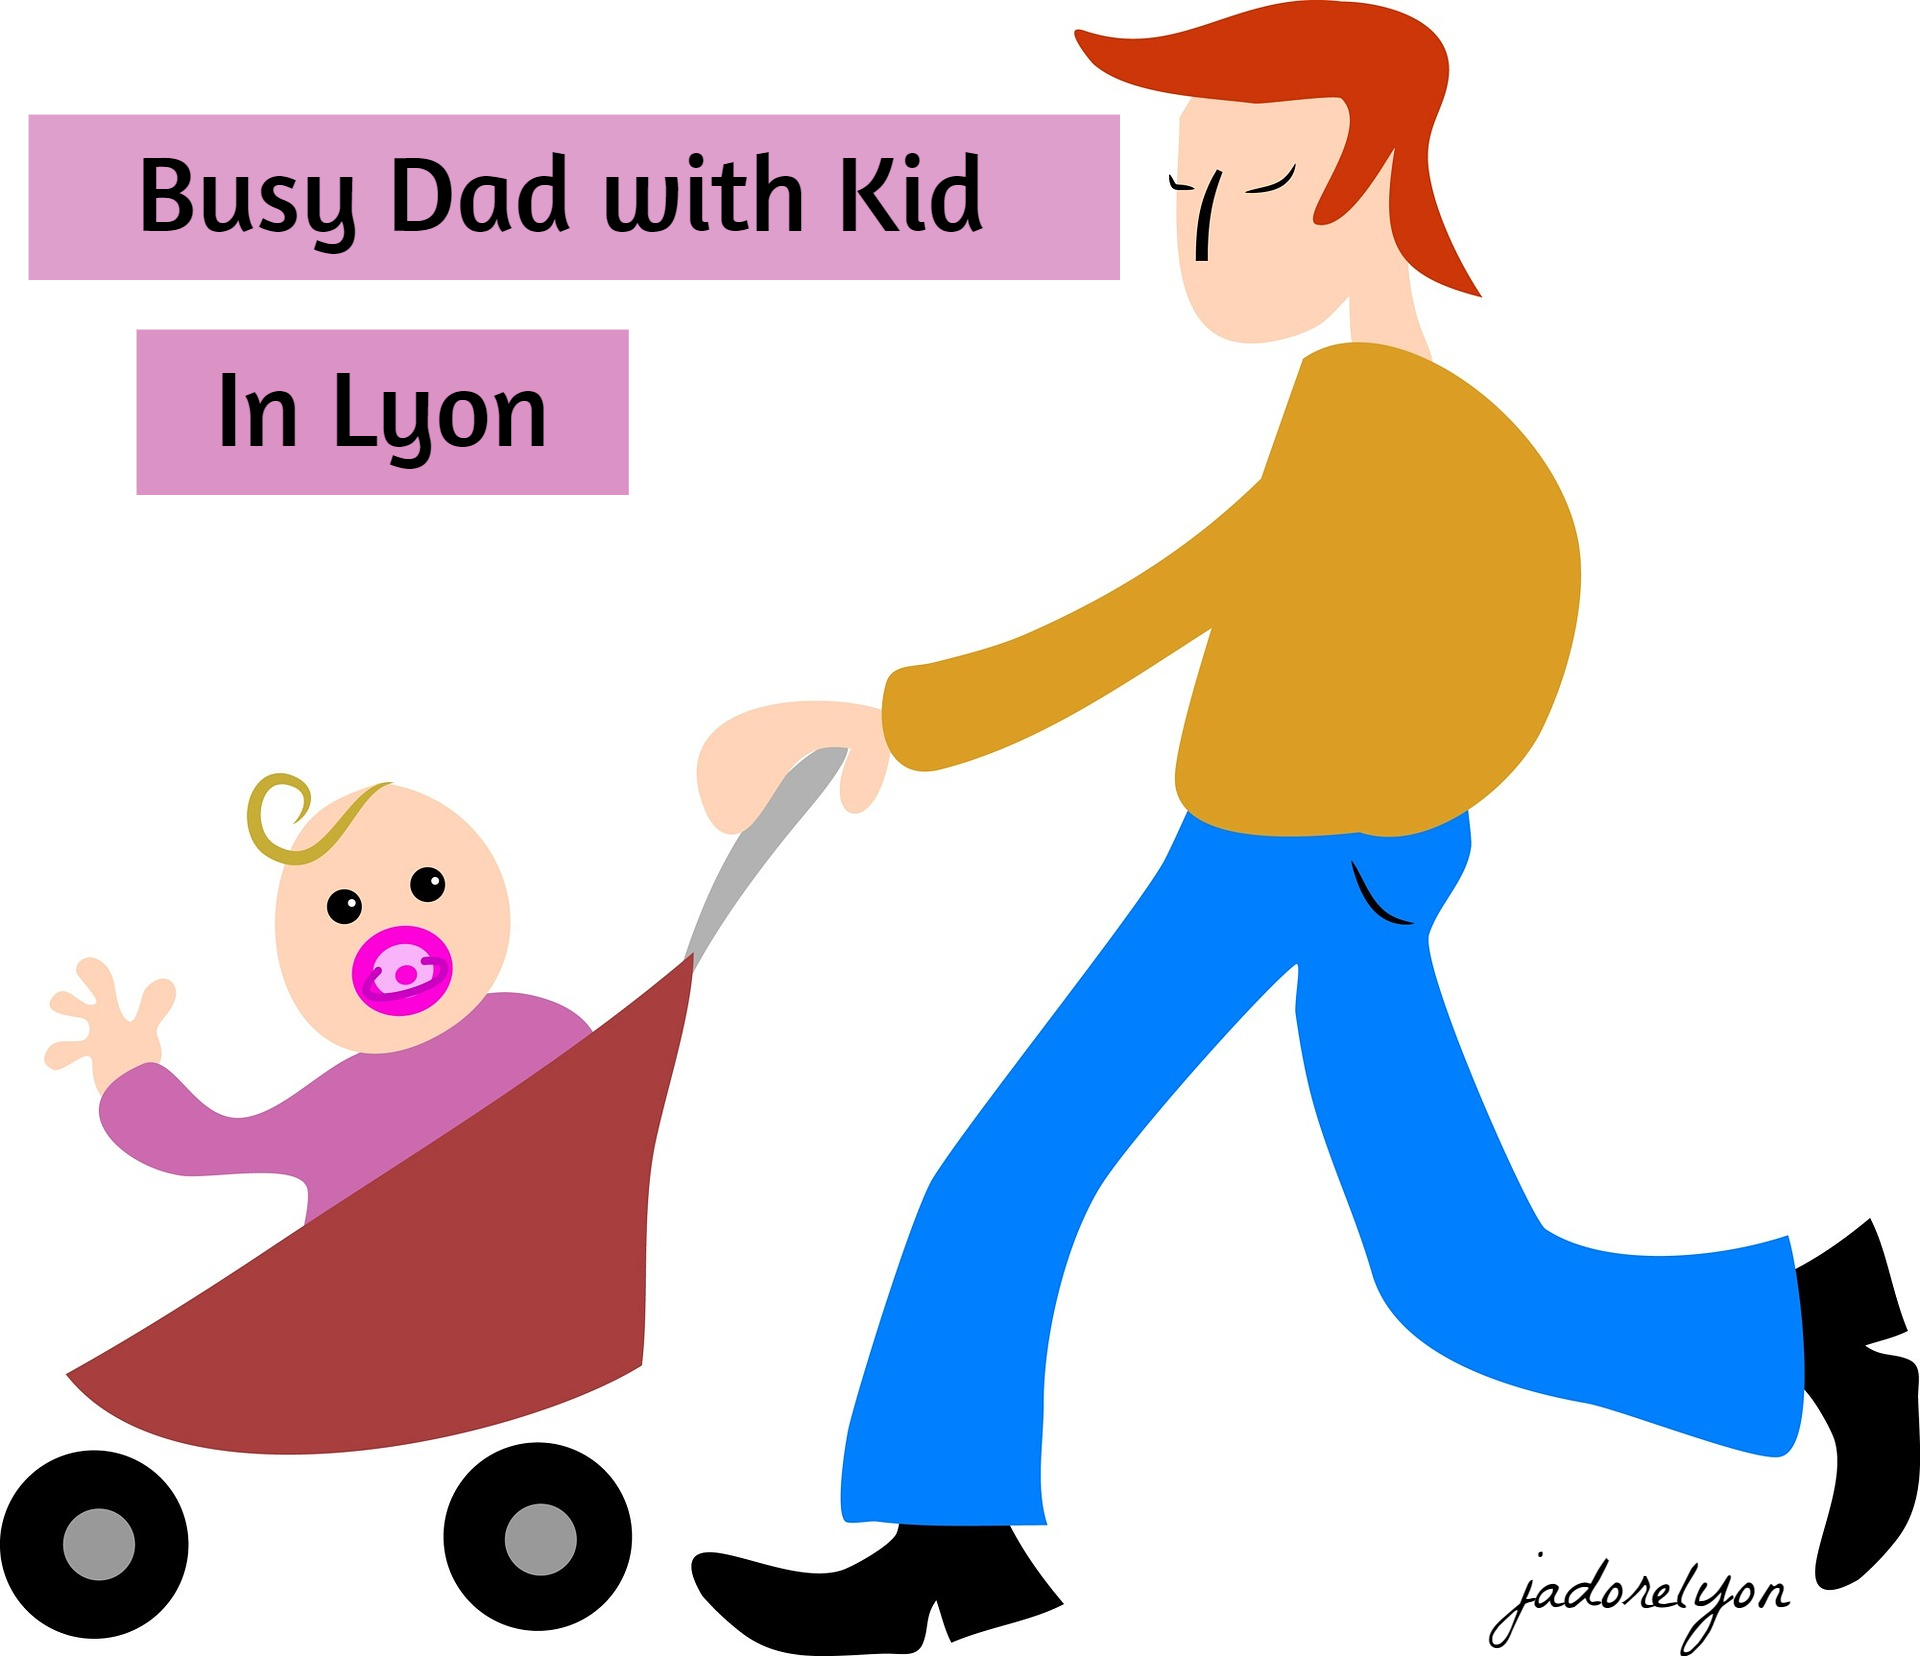 Busy Dad with kid in Lyon